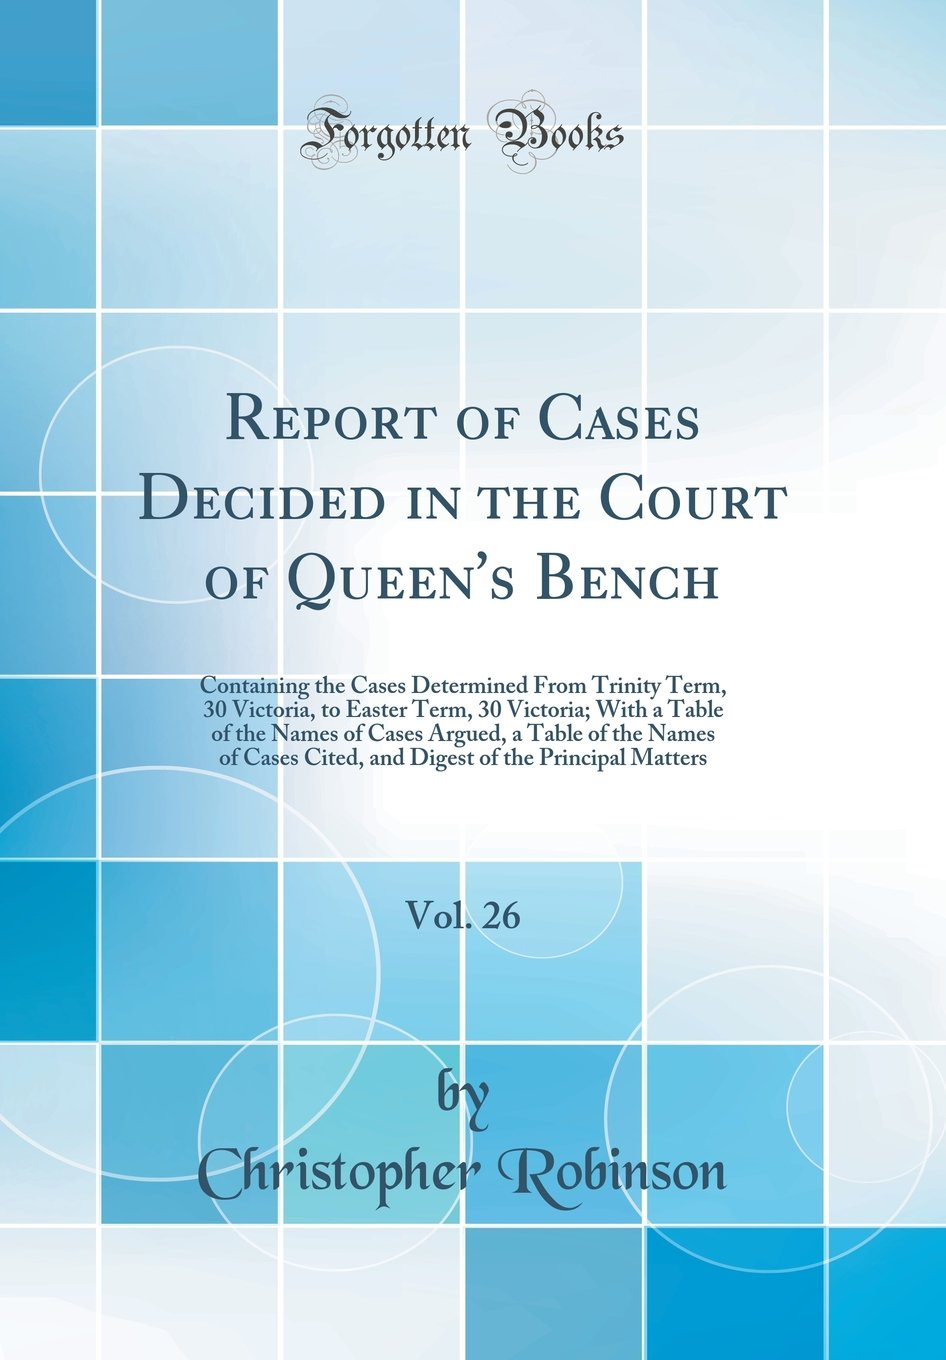 Report of Cases Decided in the Court of Queen's Bench, Vol. 26: Containing the Cases Determined from Trinity Term, 30 Victoria, to Easter Term, 30 ... the Names of Cases Cited, and Digest of the pdf epub